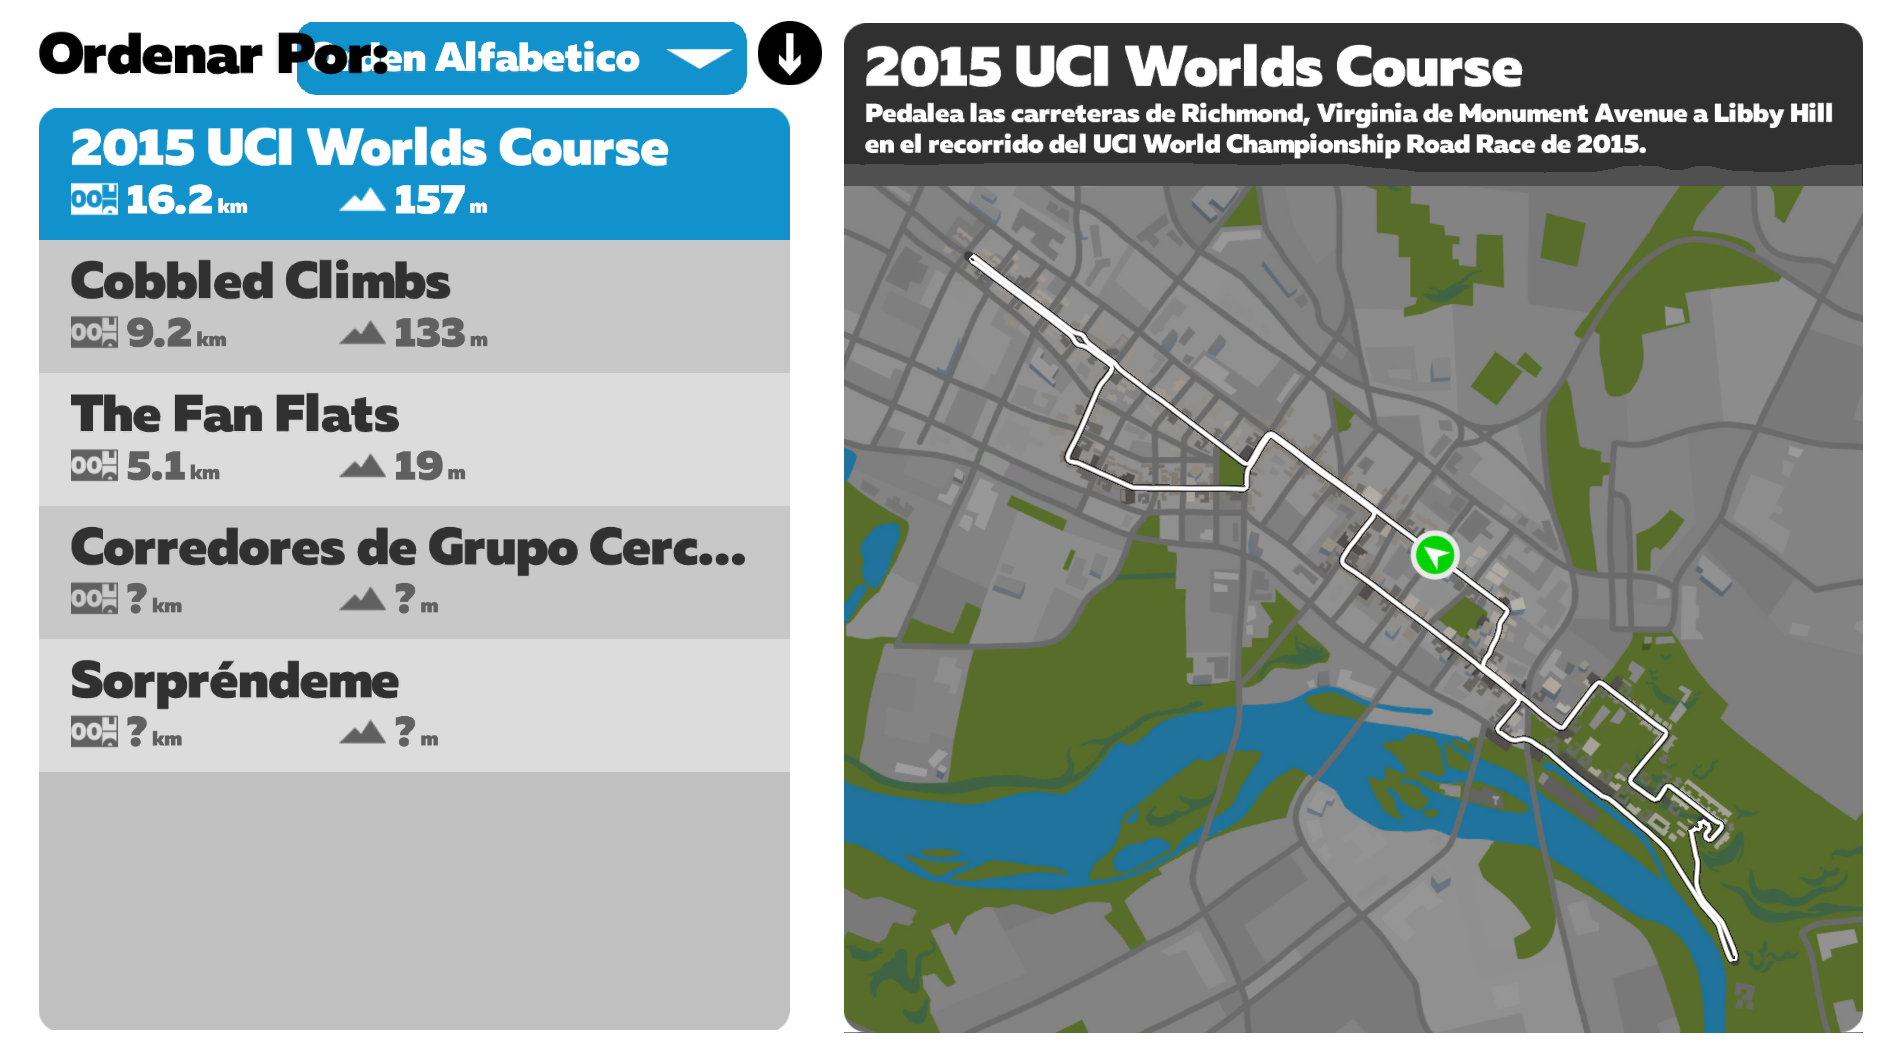 2015 UCI Worlds Course